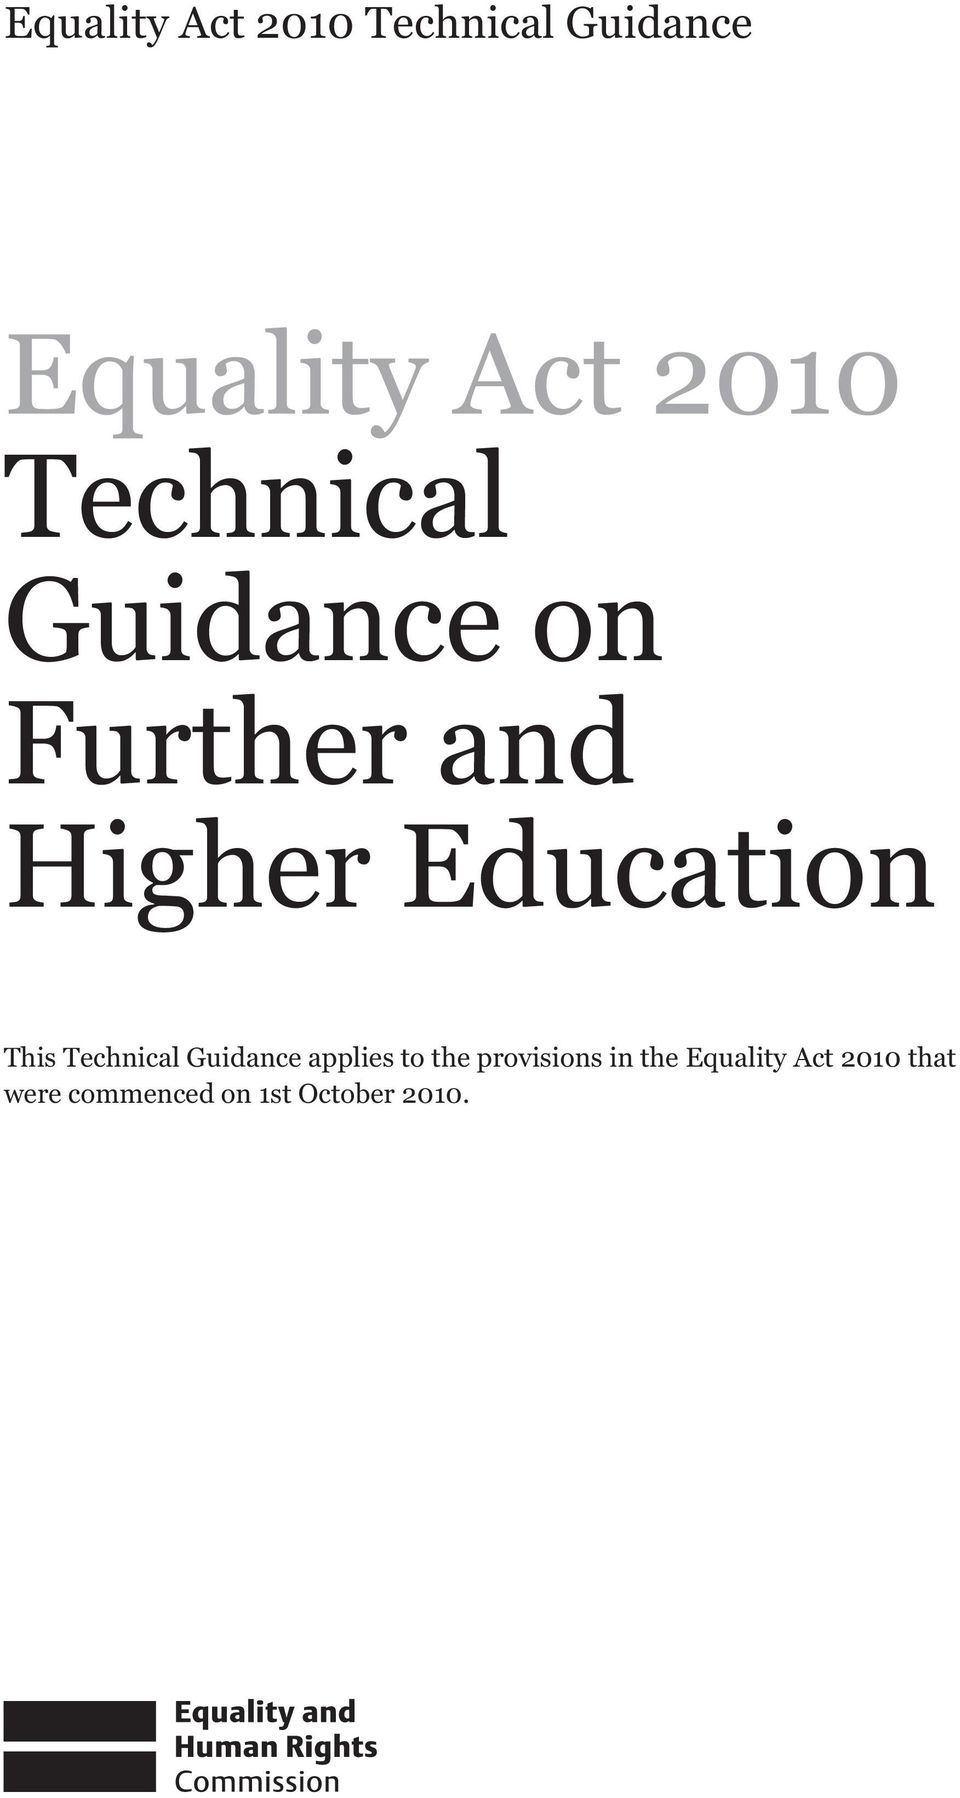 Technical Guidance applies to the provisions in the